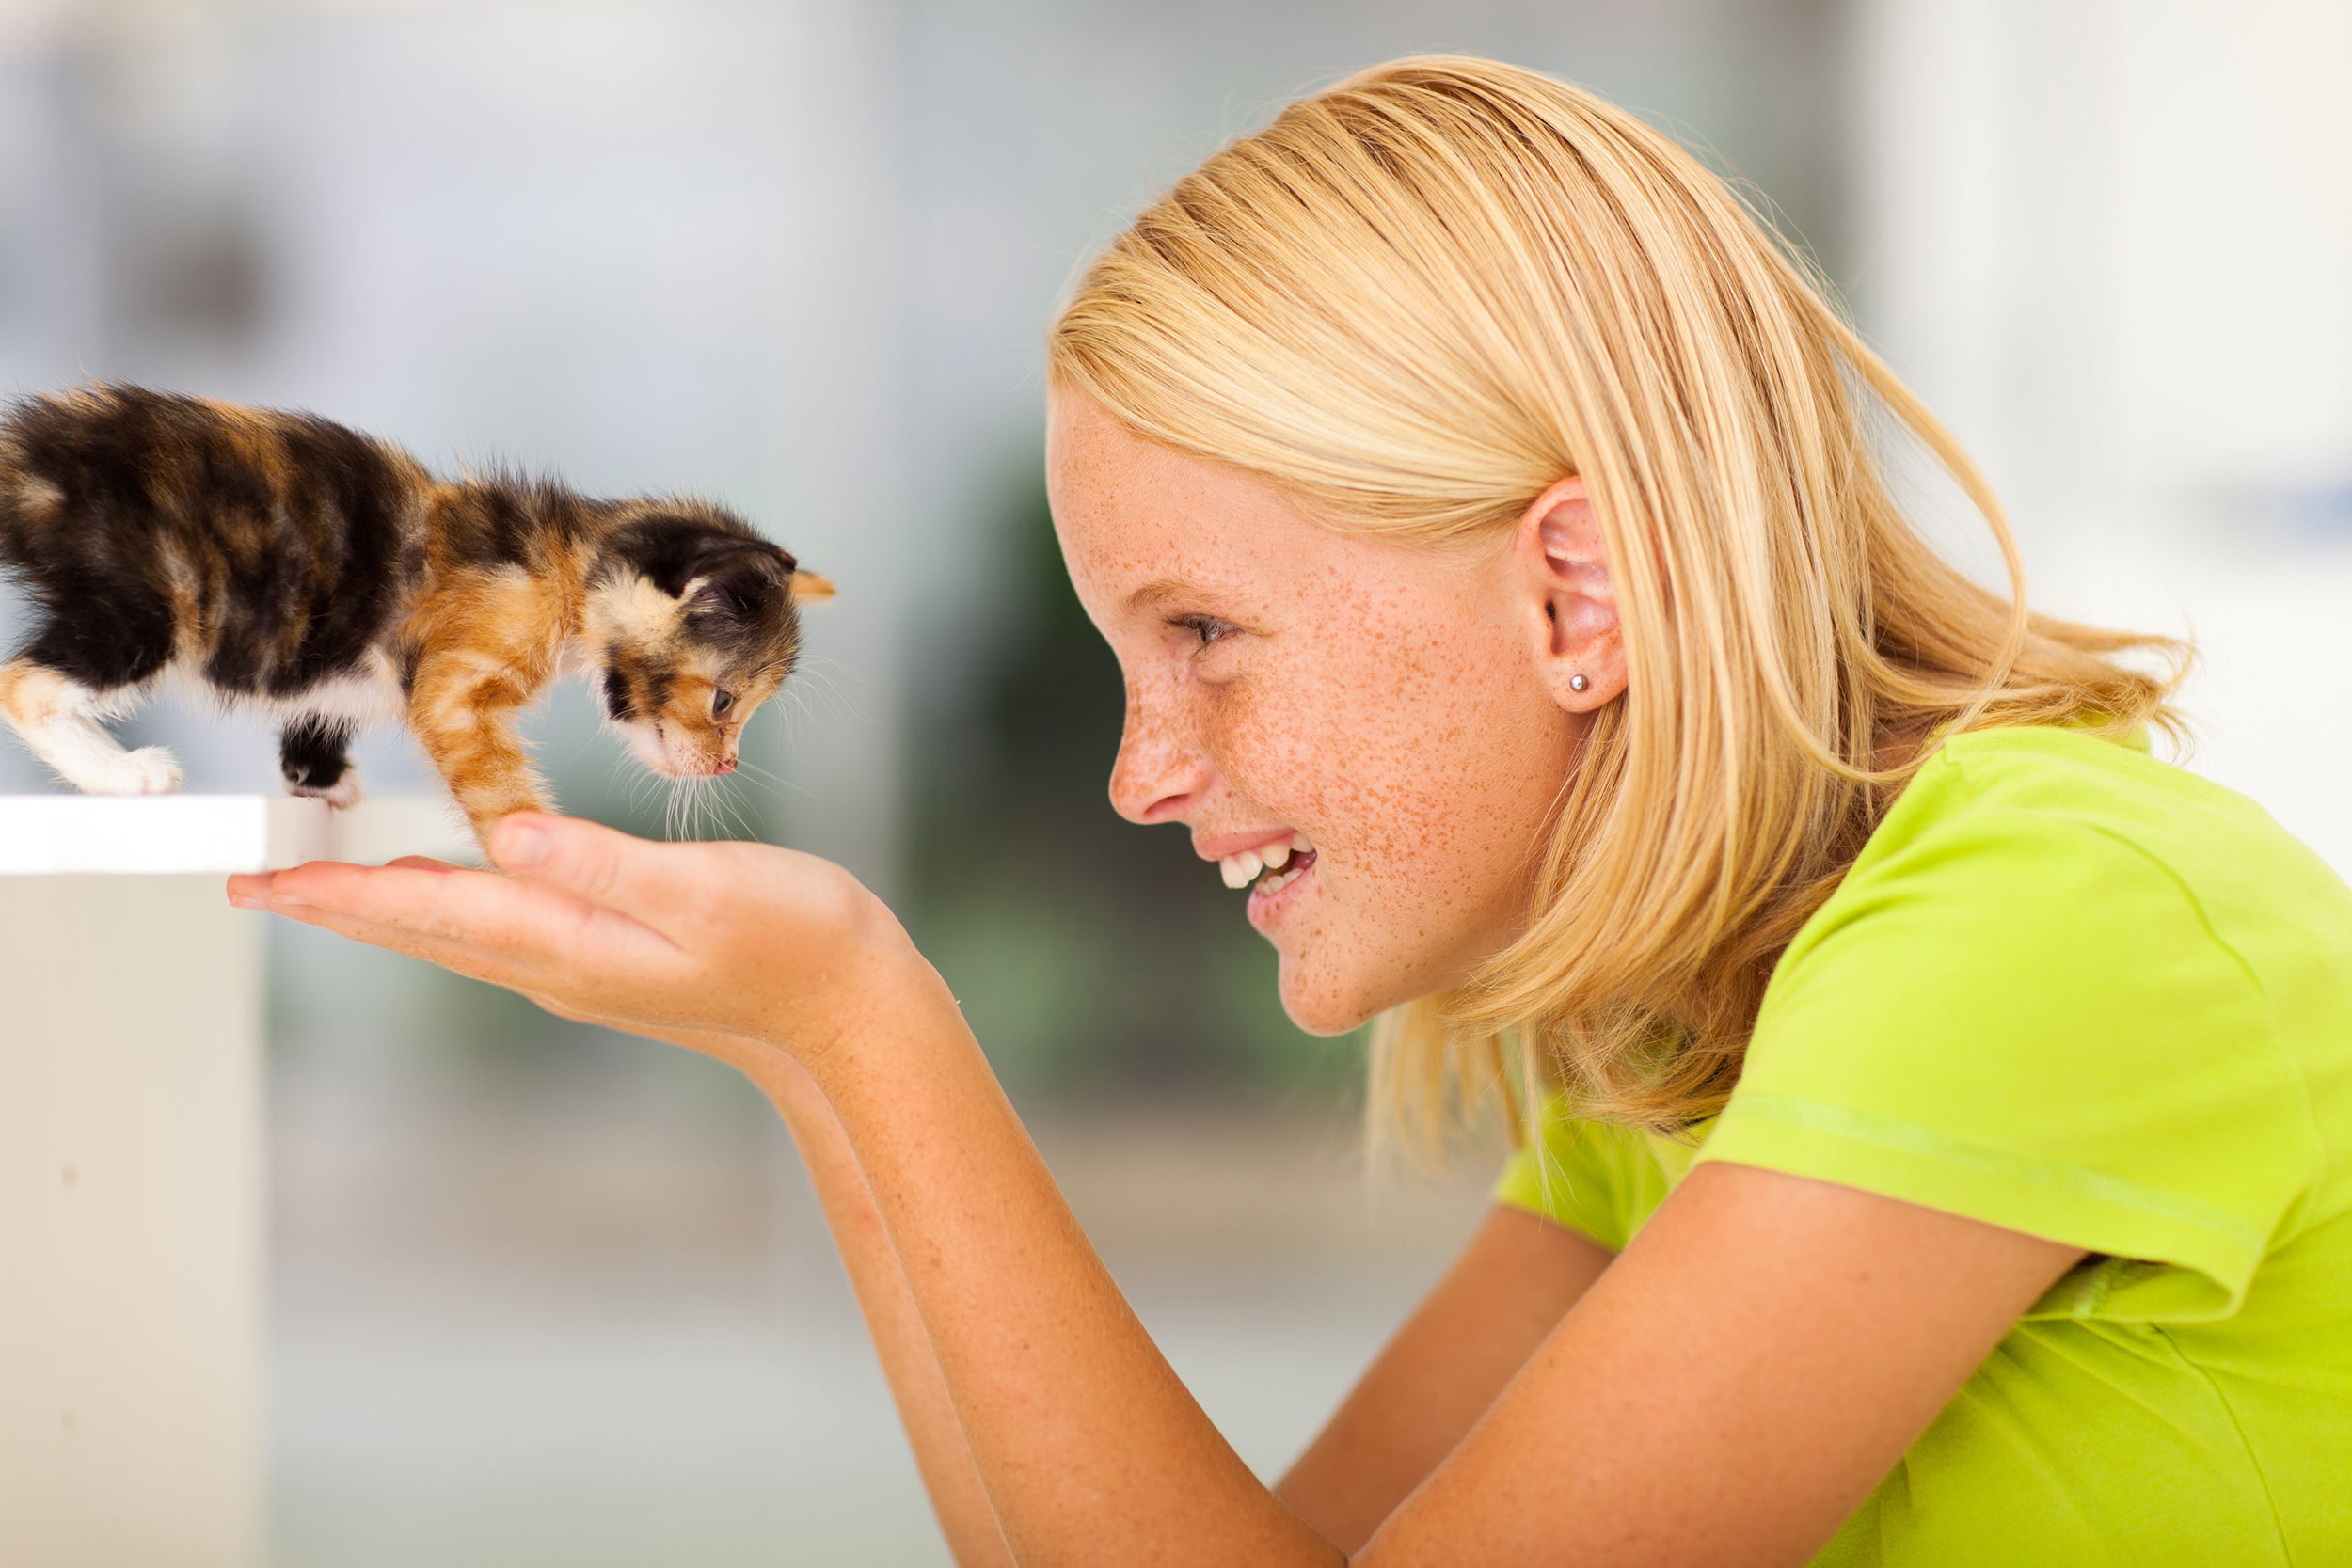 Random Acts of Kindness Ideas for Kids - volunteering at an animal shelter